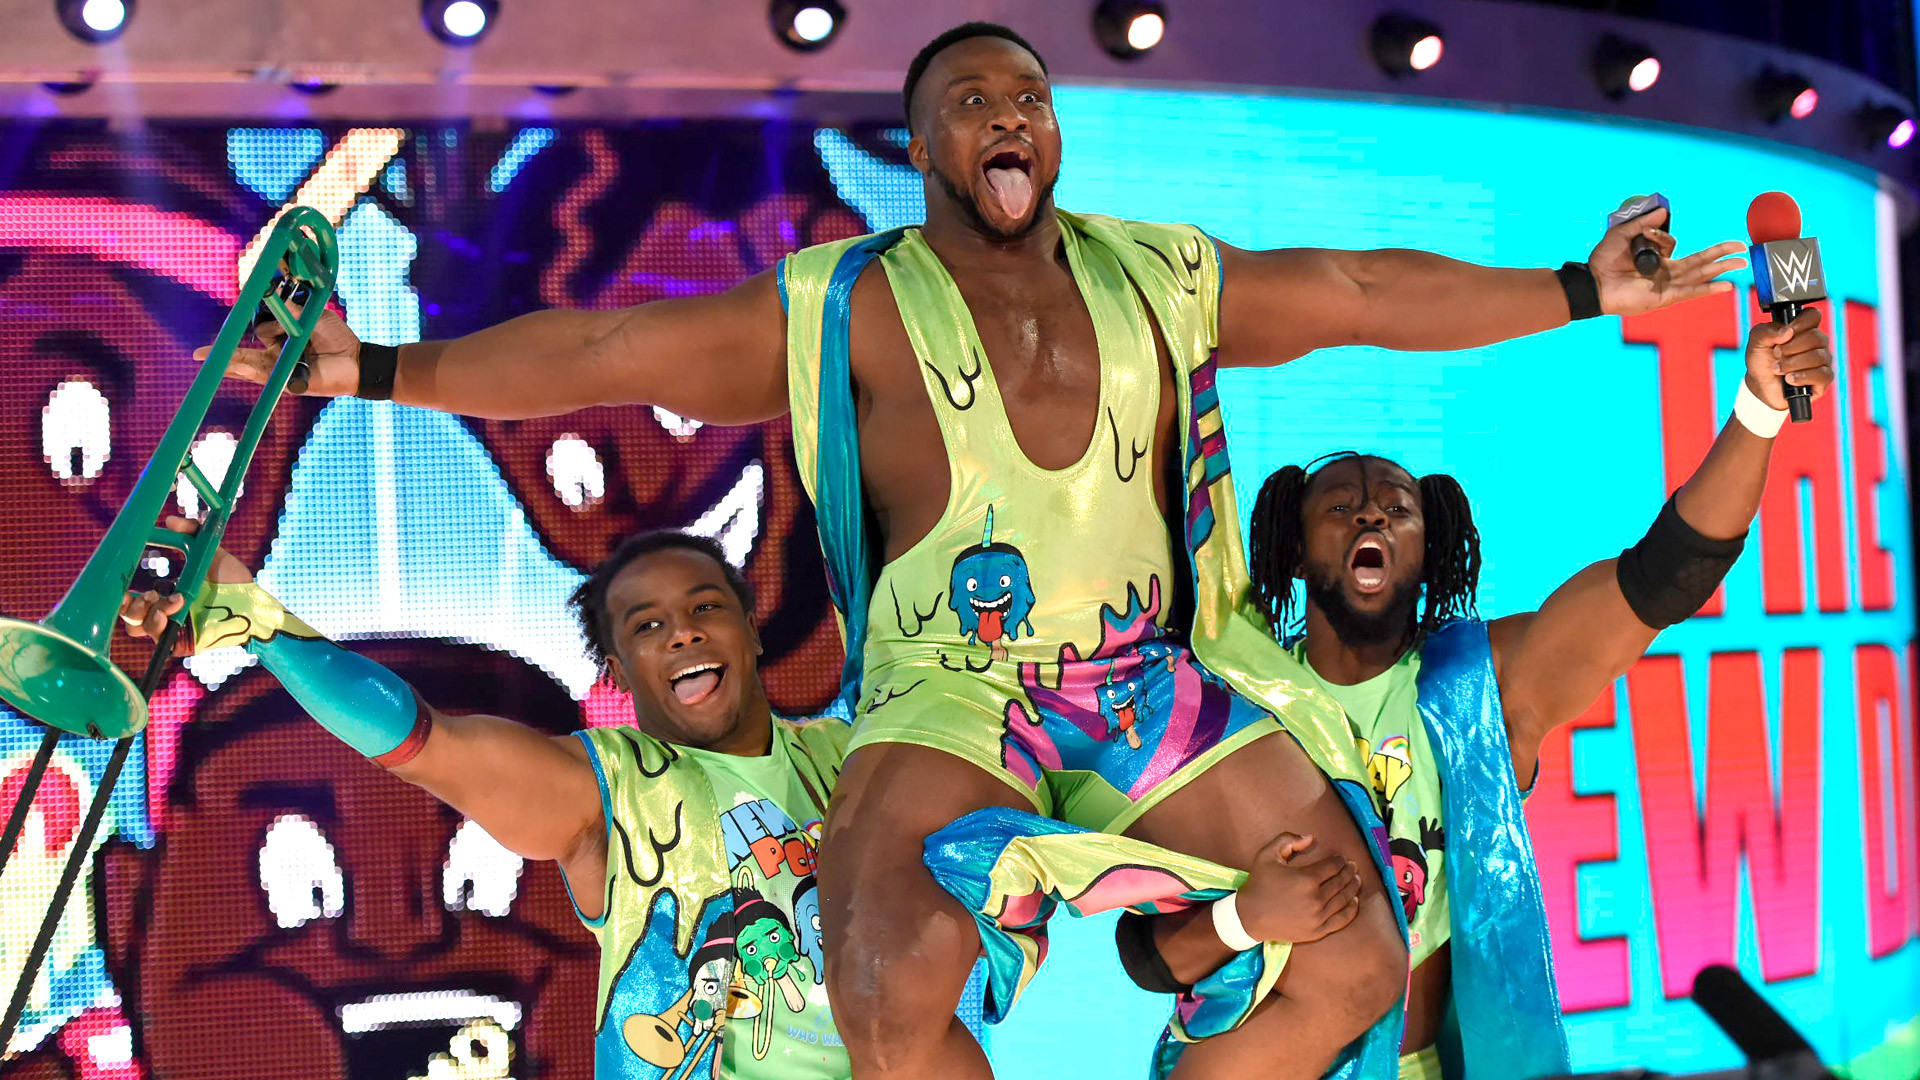 The New Day confronted The Usos and made a major WWE Money in the Bank  announcement   WWE